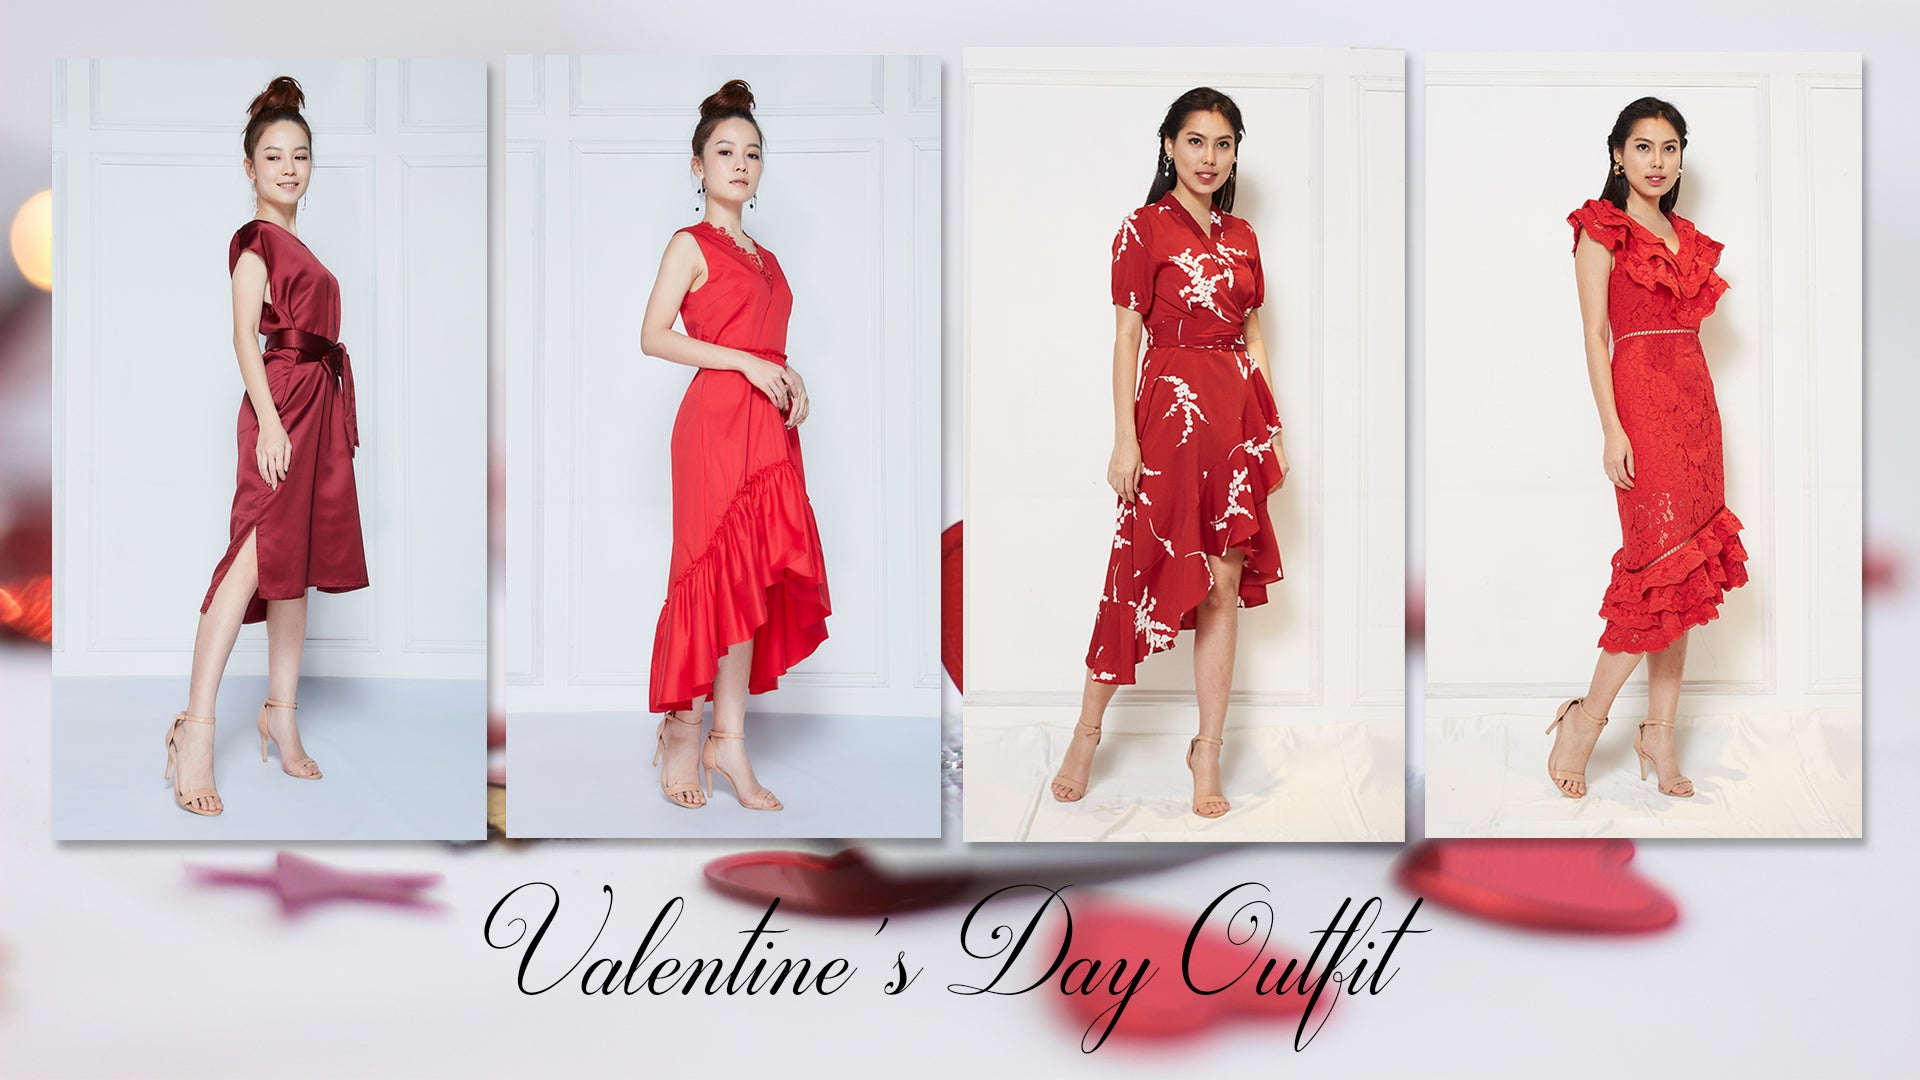 What to wear for Valentine's Day ?